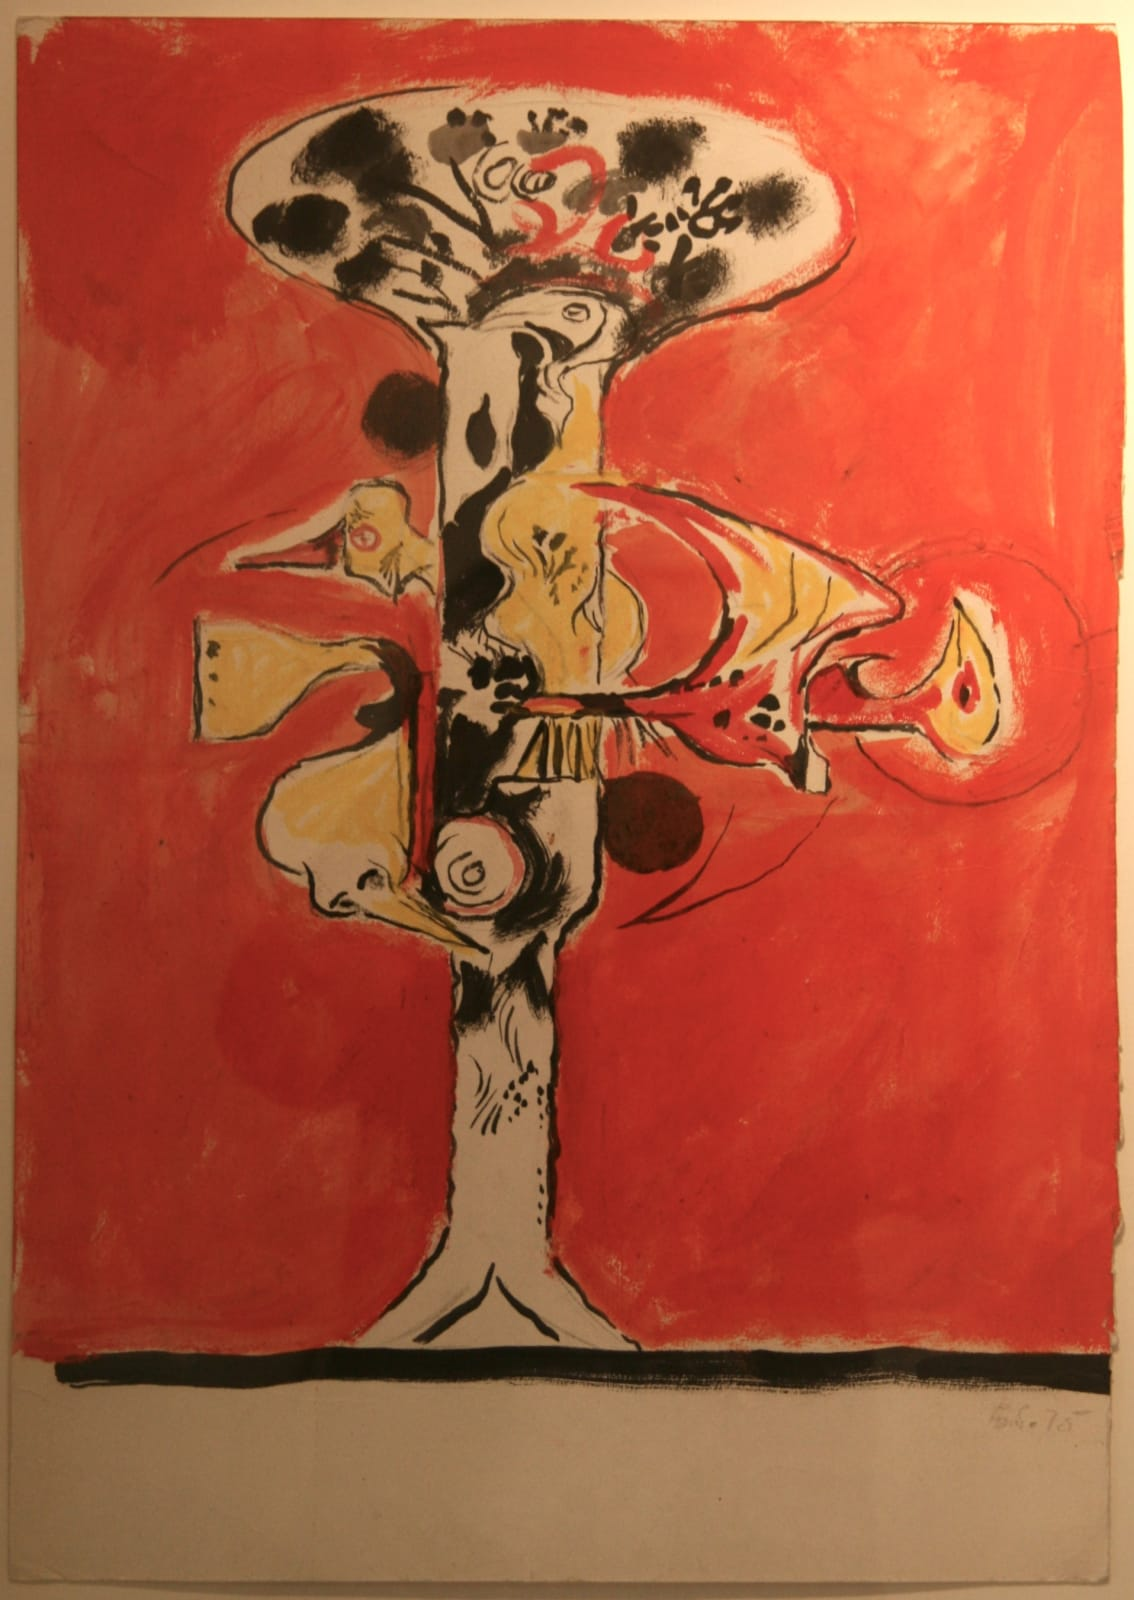 Graham SUTHERLAND (1903 – 1980) Composition, 1975 Pen, ink and gouache on paper 23 x 16 inches / 58.4 x 40.6 cm